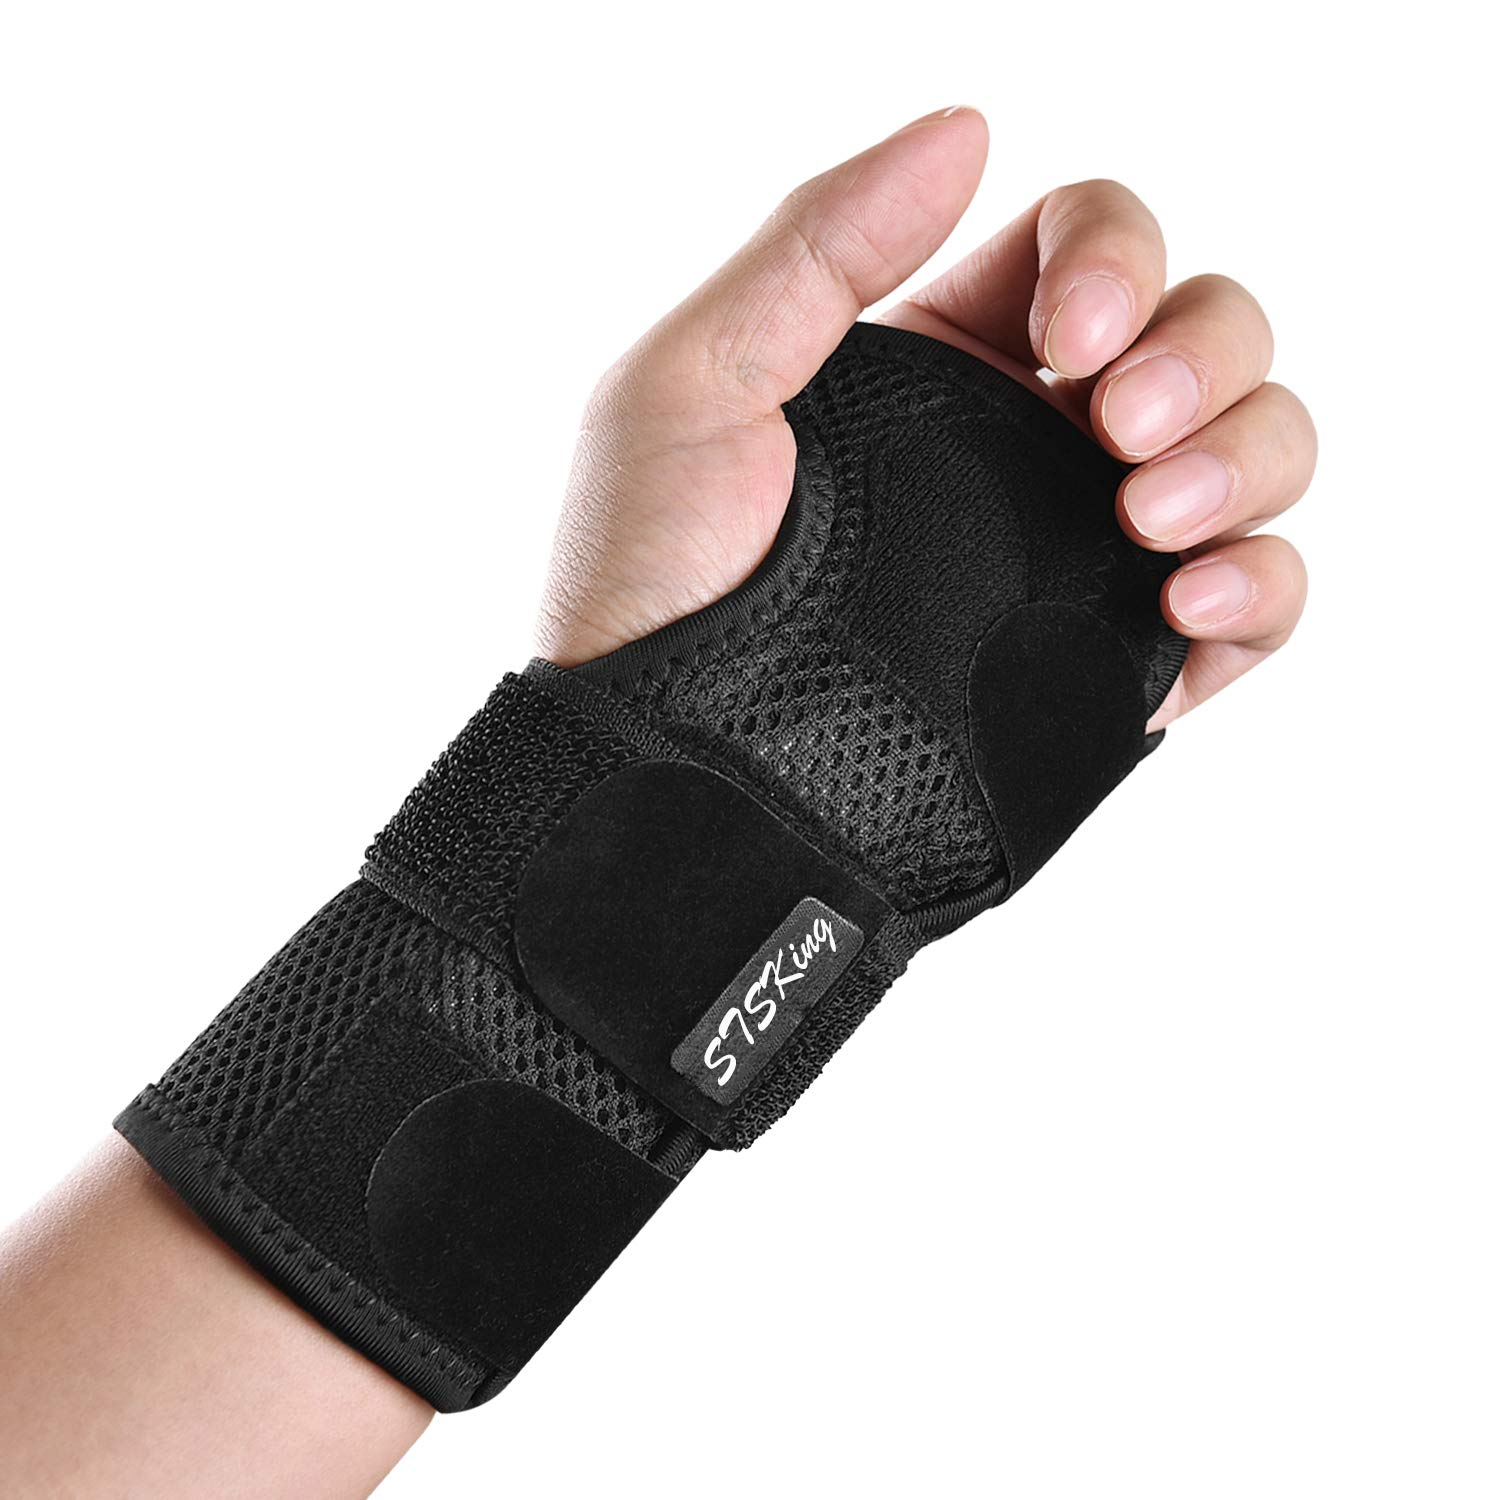 Wrist Brace for Carpal Tunnel - Adjustable Wrist Support Brace with Splints Left Hand - Hand Support Removable Metal Splint and to Help Night Sleep Relieve and Treat Wrist Pain, Sports